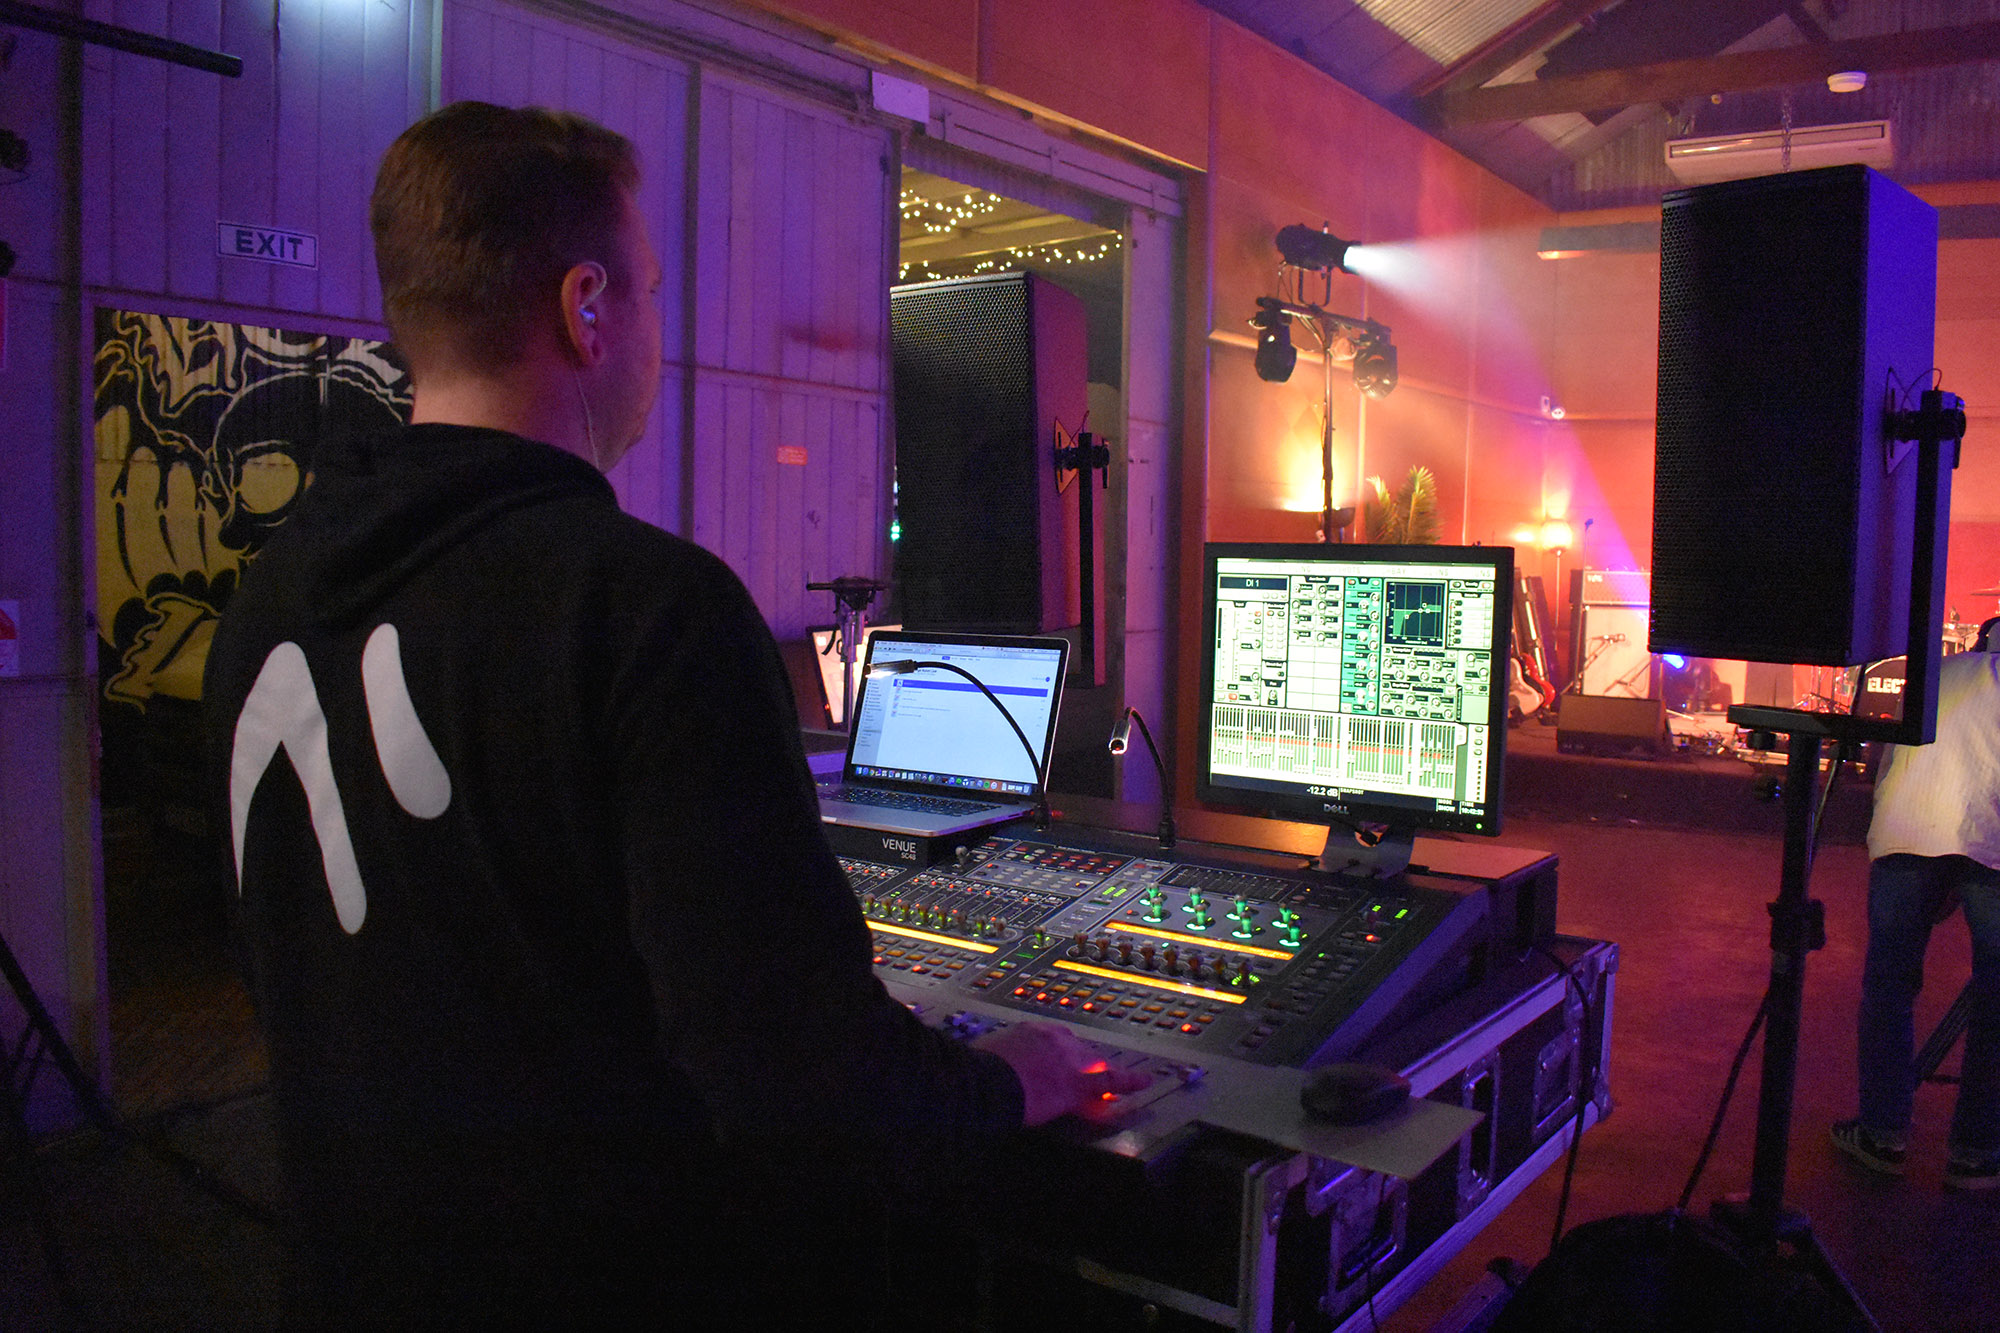 Sound engineering provided by Showscreens for our launch